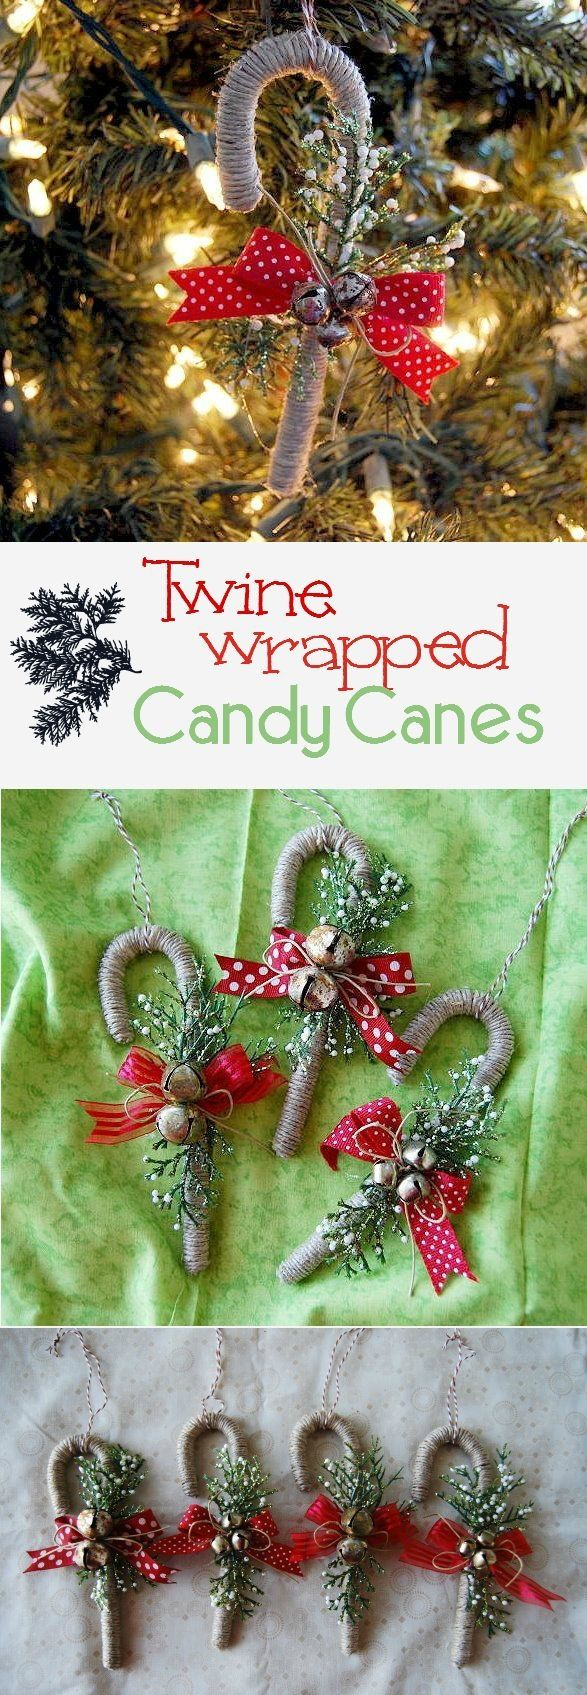 Grungy rag candy canes pineuffed in an old flour sifter e grungy rag candy canes pineuffed in an old flour sifter e pattern is available on this site christmas pinterest candy canes publicscrutiny Choice Image